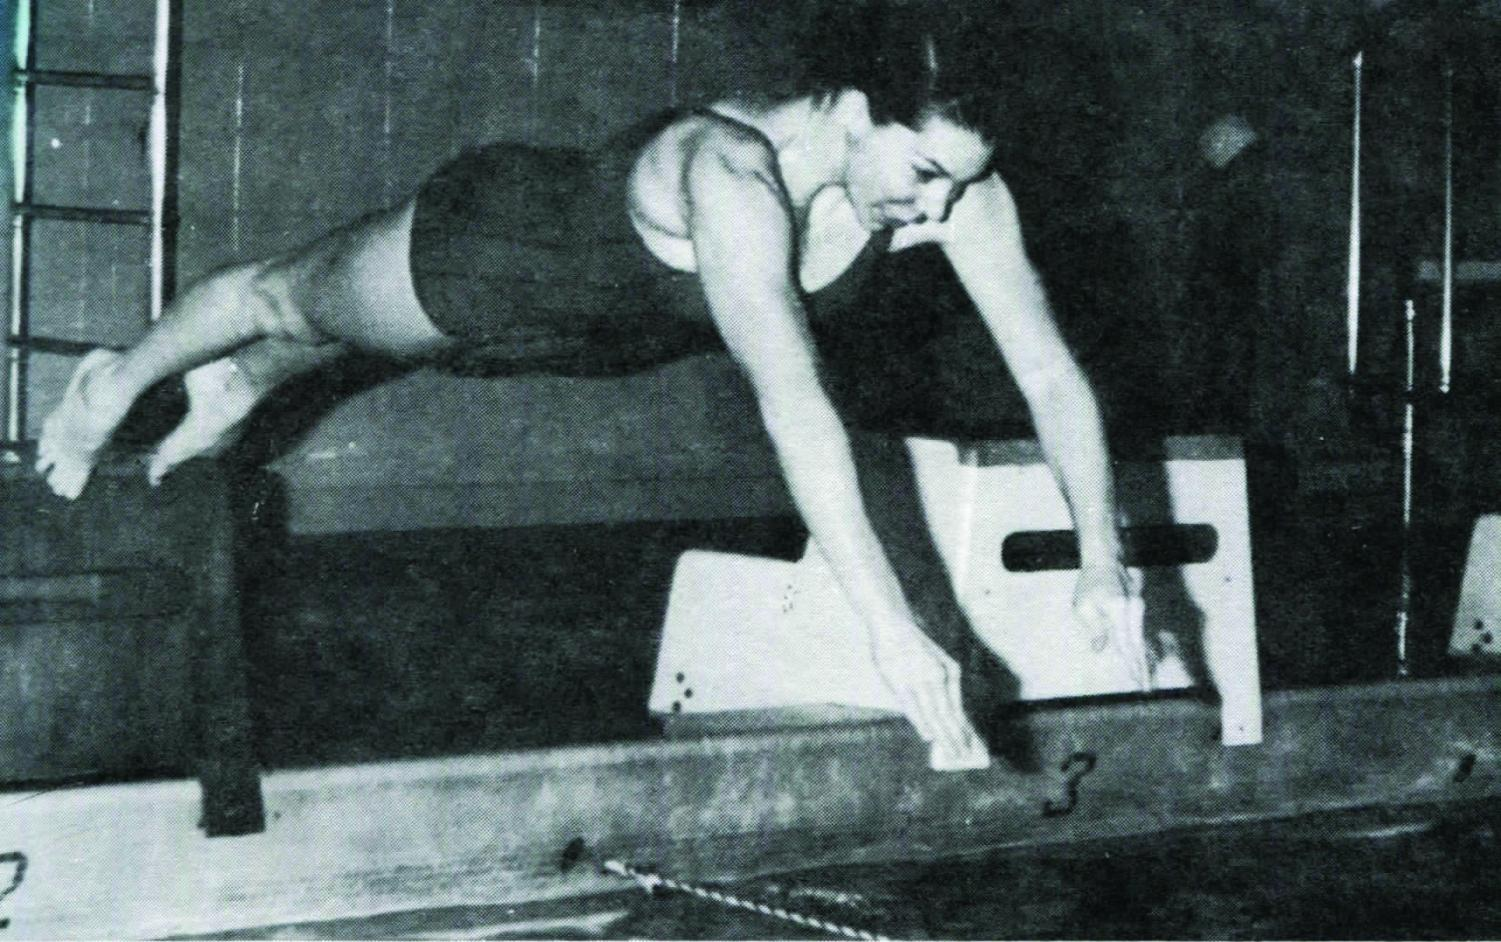 Condrillo practicing for her 1973 meet against Morristown.